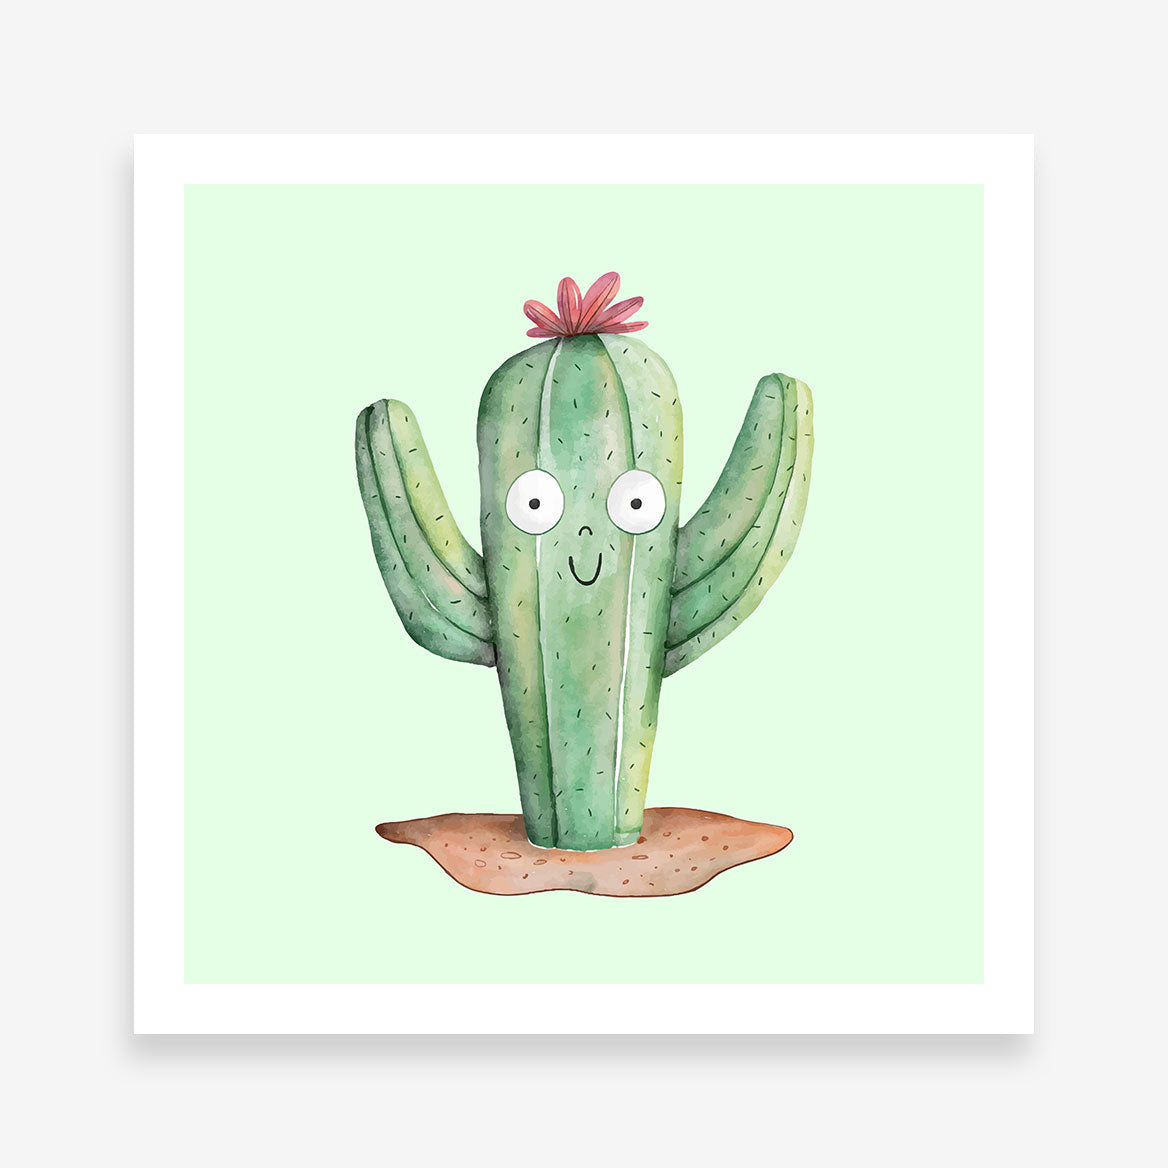 Poster print with cute watercolour cactus on light green background.